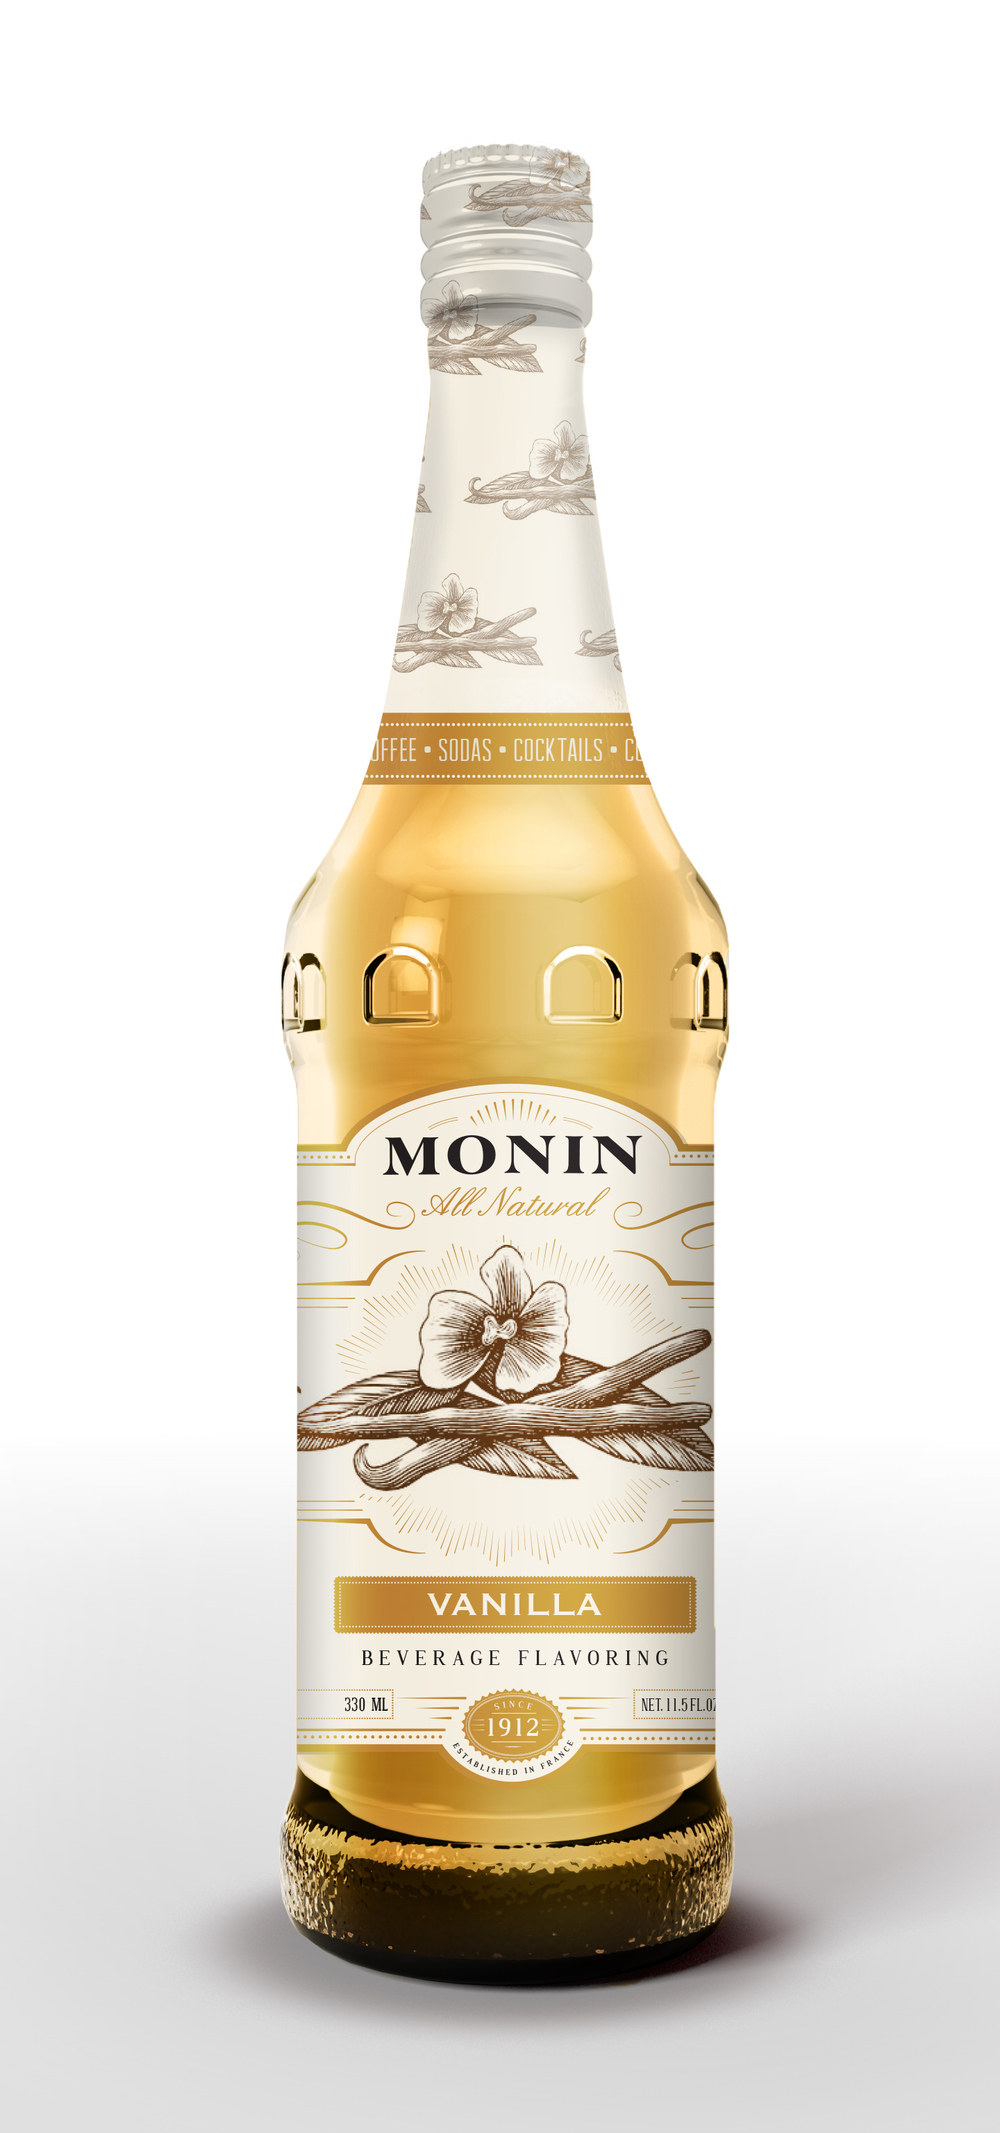 Monin_Bottle_Mockup_Van4.jpg